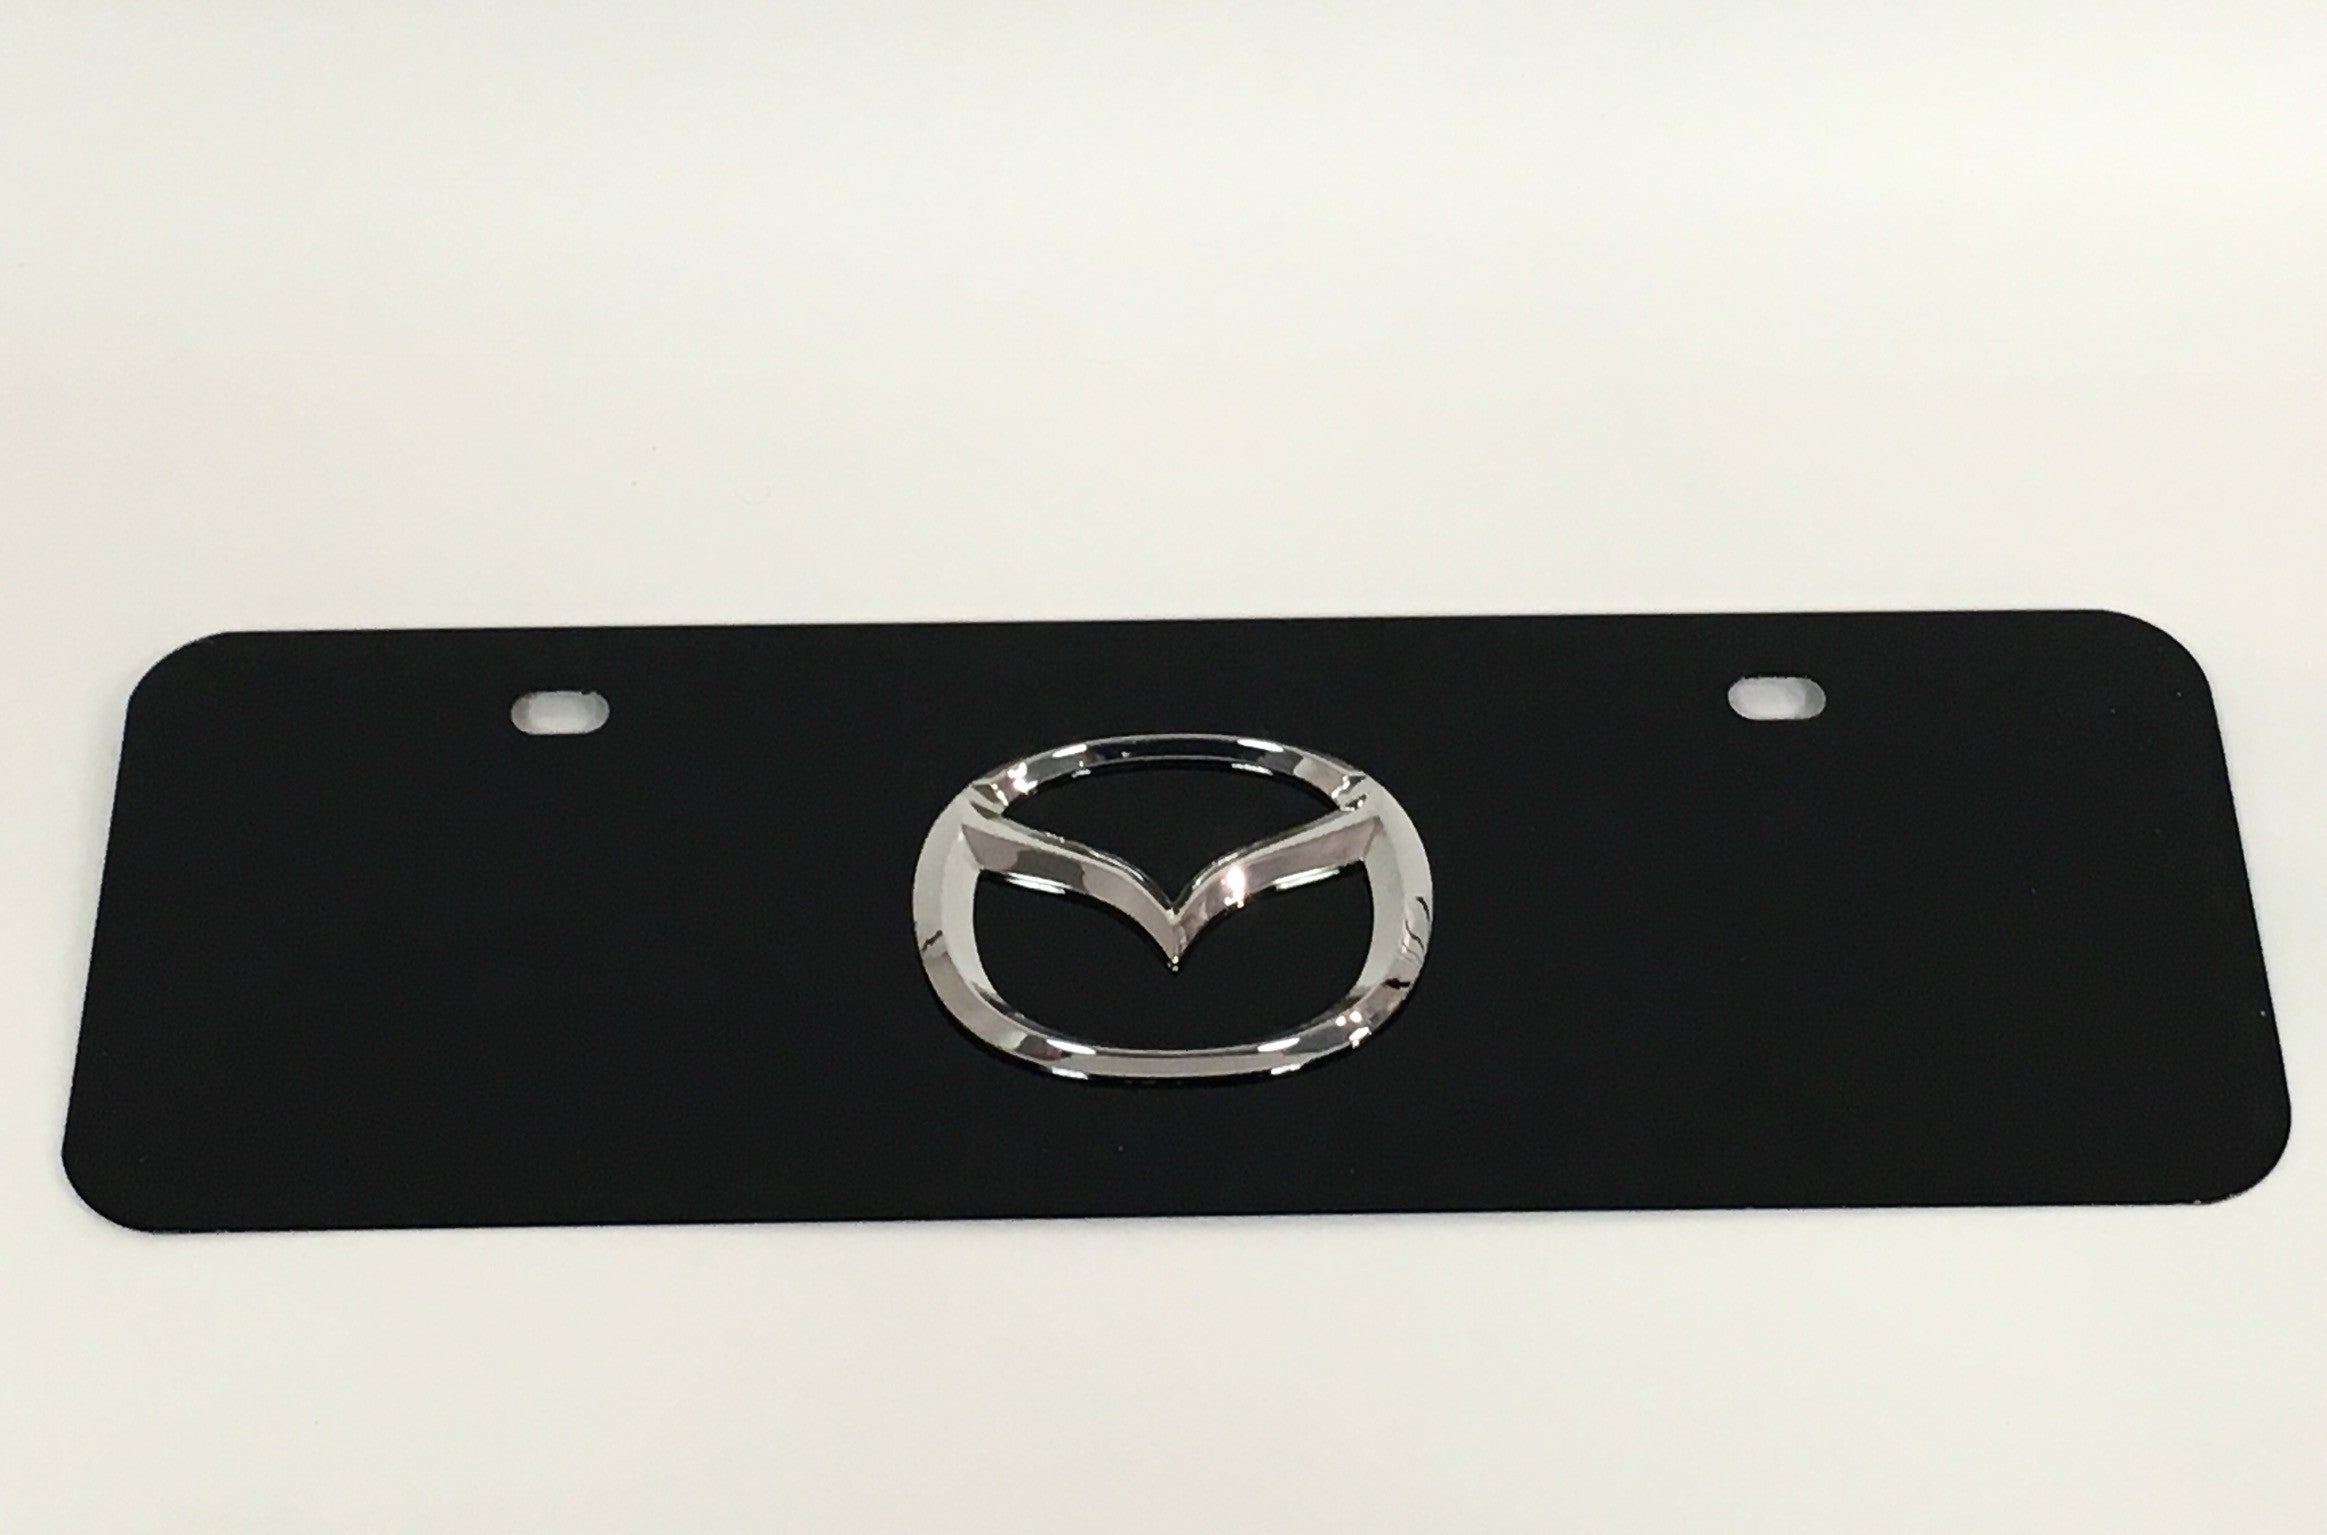 Mazda Official Emblem Black Stainless Steel Half-Sized License Plate